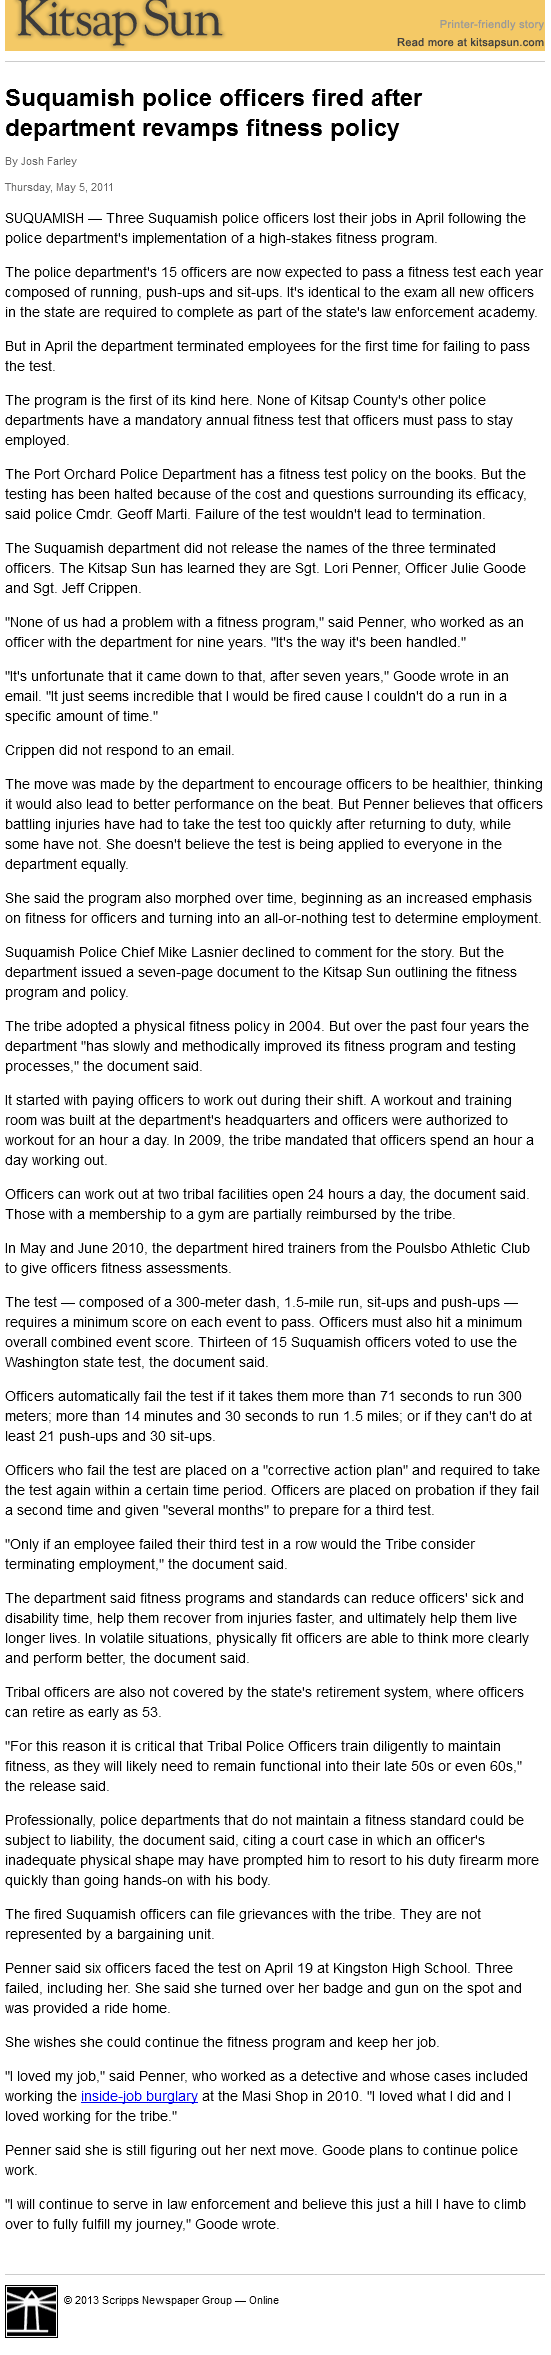 Suquamish police officers fired after department revamps fitness policy  Kitsap Sun 2013-07-25 00-43-36